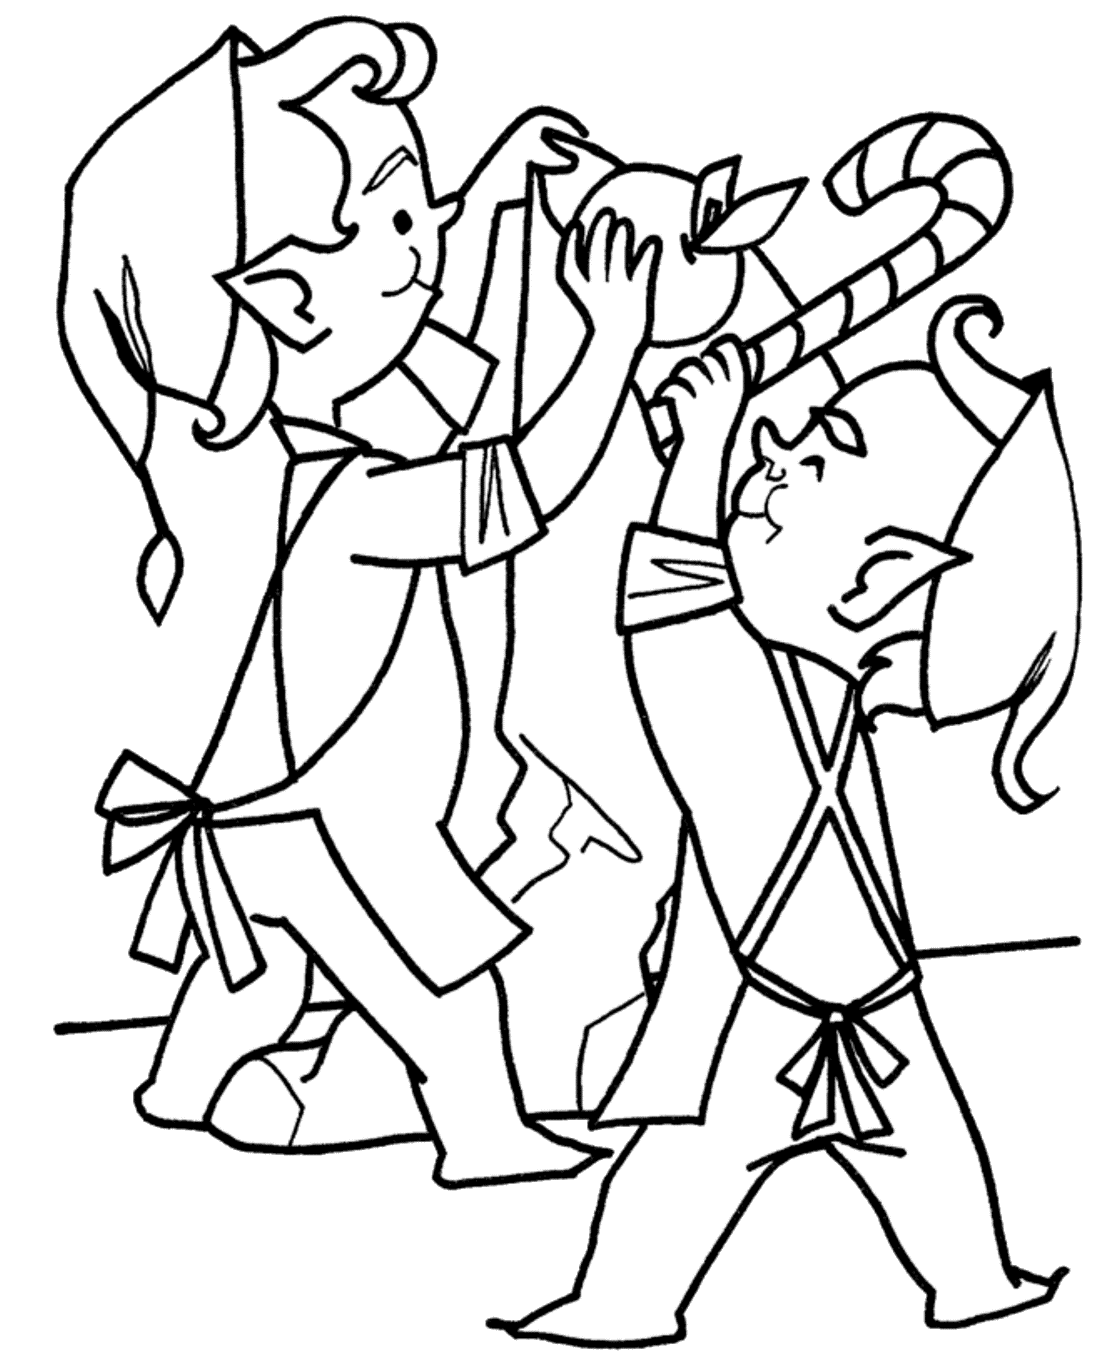 fantasy elf coloring pages coloring page kids for fantasy image photos elves coloring fantasy elf pages